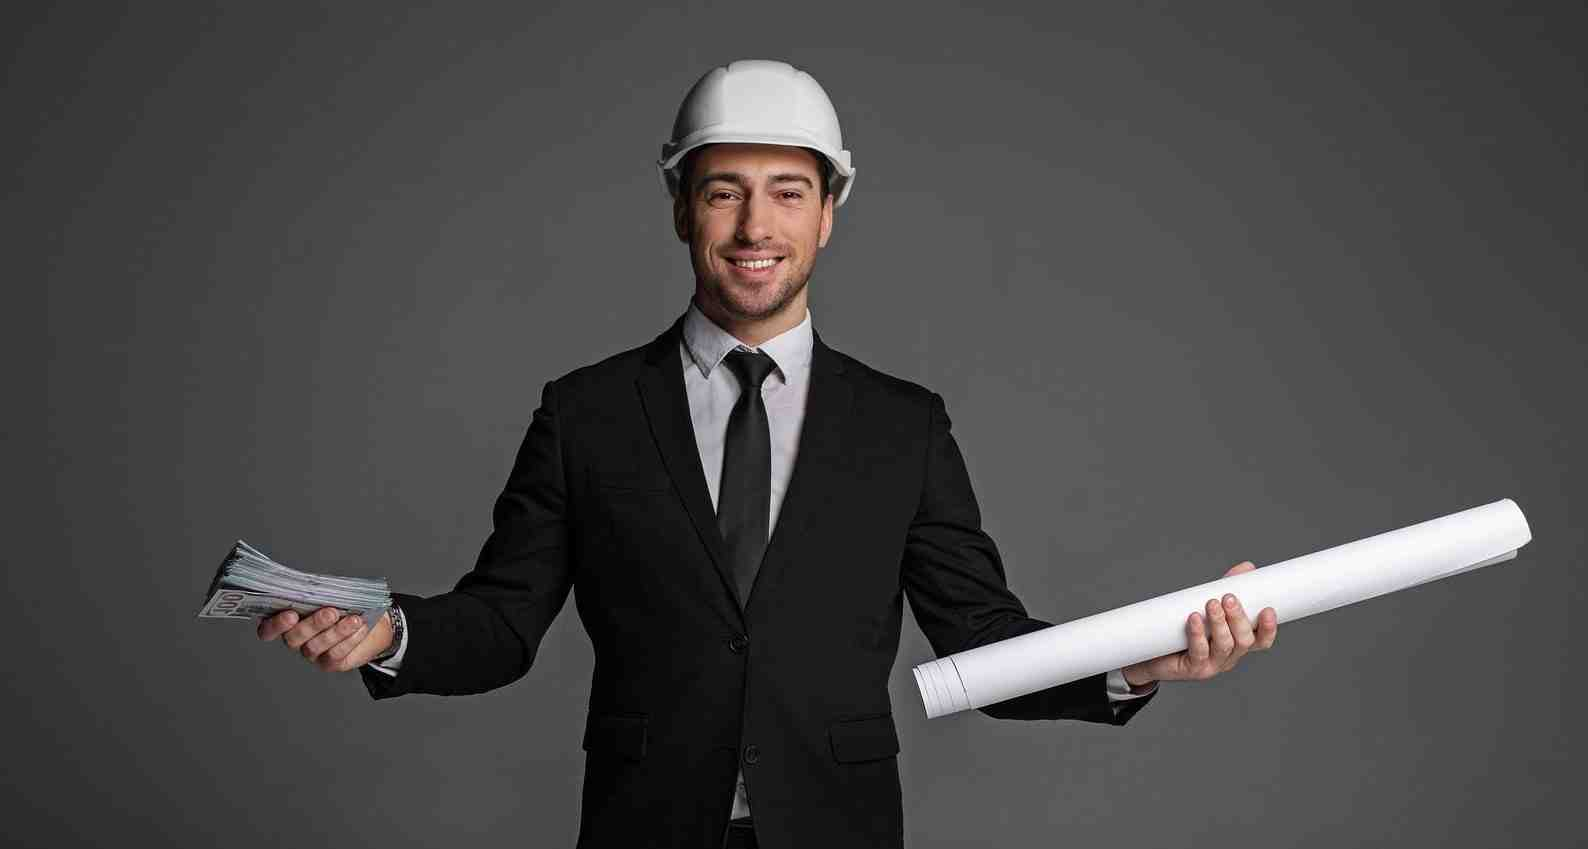 What is the average salary of a real estate developer?